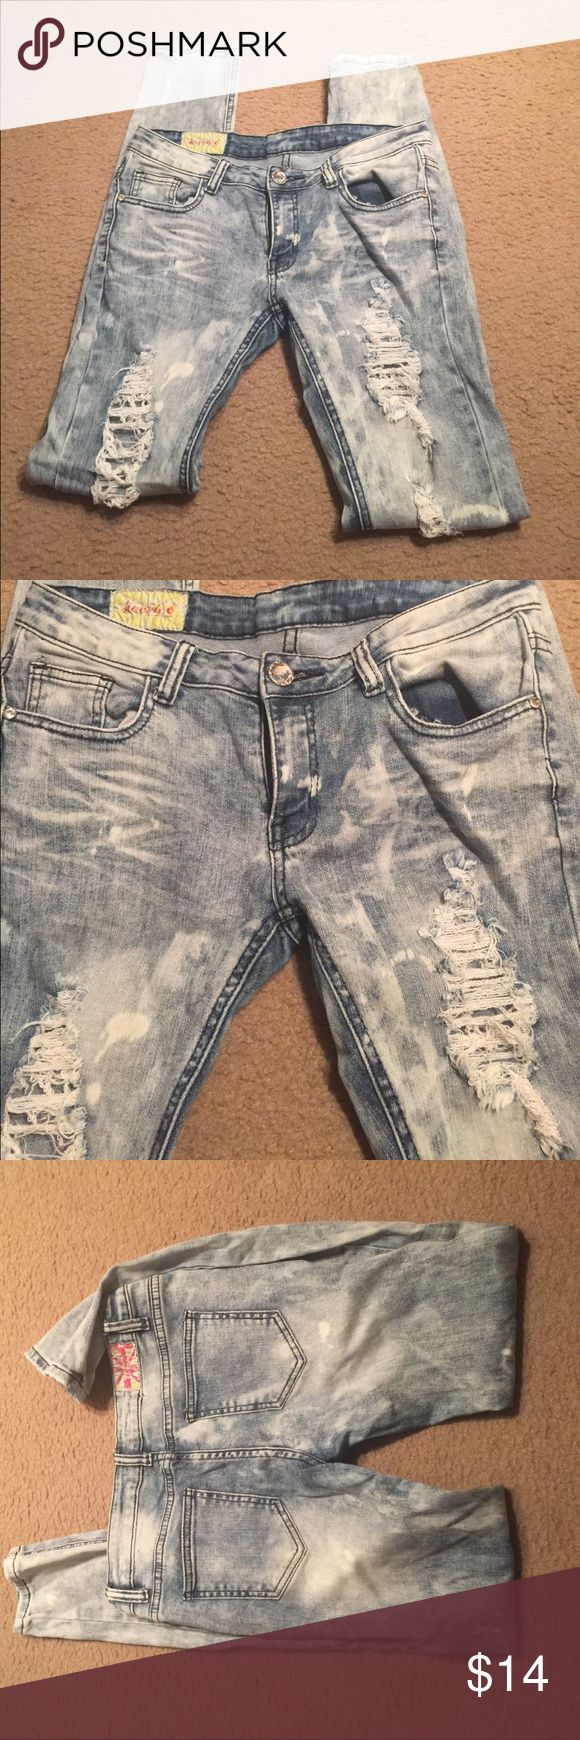 Distressed Ripped Jeans Great condition only worn once washed distressed look Jeans Straight Leg